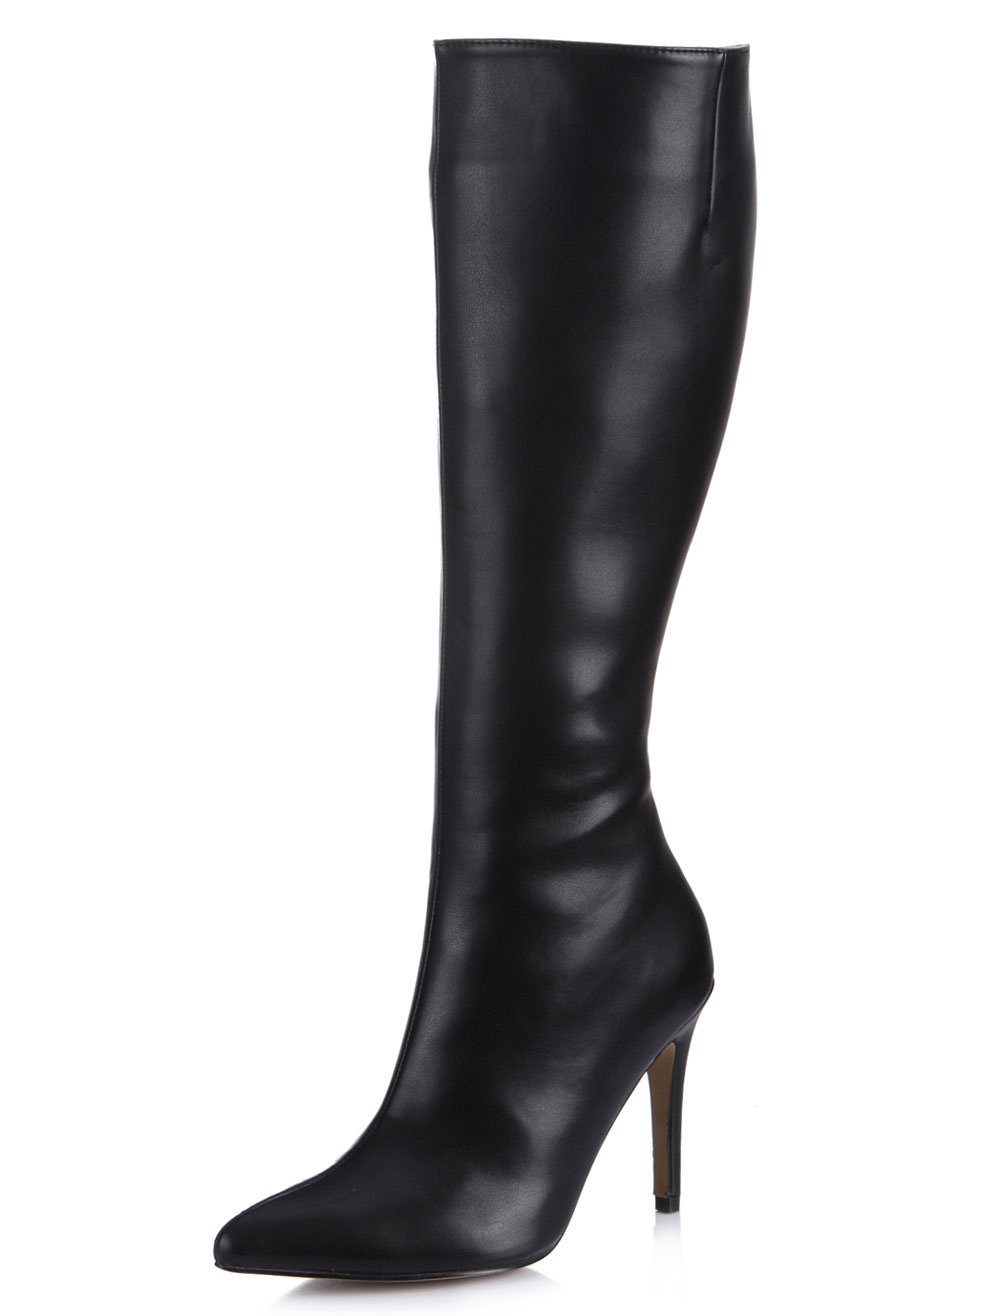 Black Pointed Toe Stiletto Heel Zipper PU Leather Stylish Knee Length Boots for Women